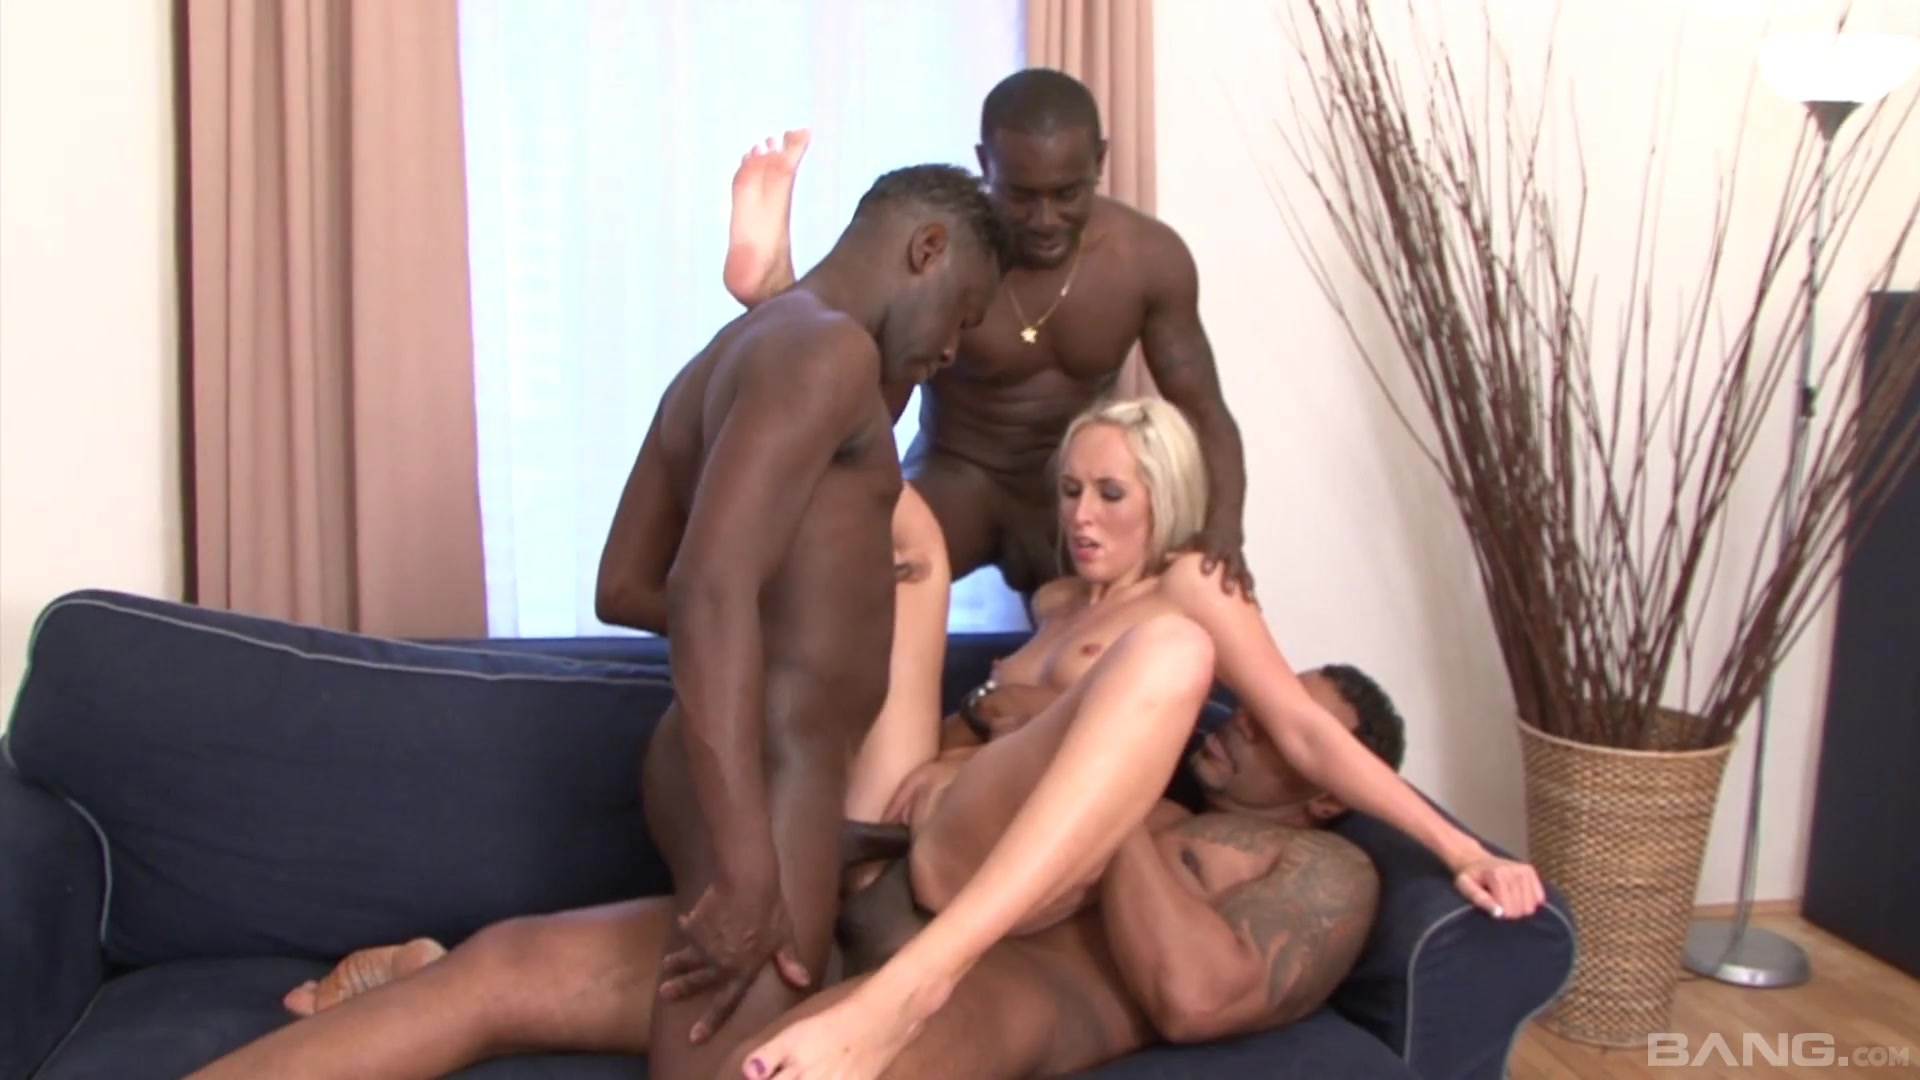 Married blonde fulfills her deep desires of fucking with black studs